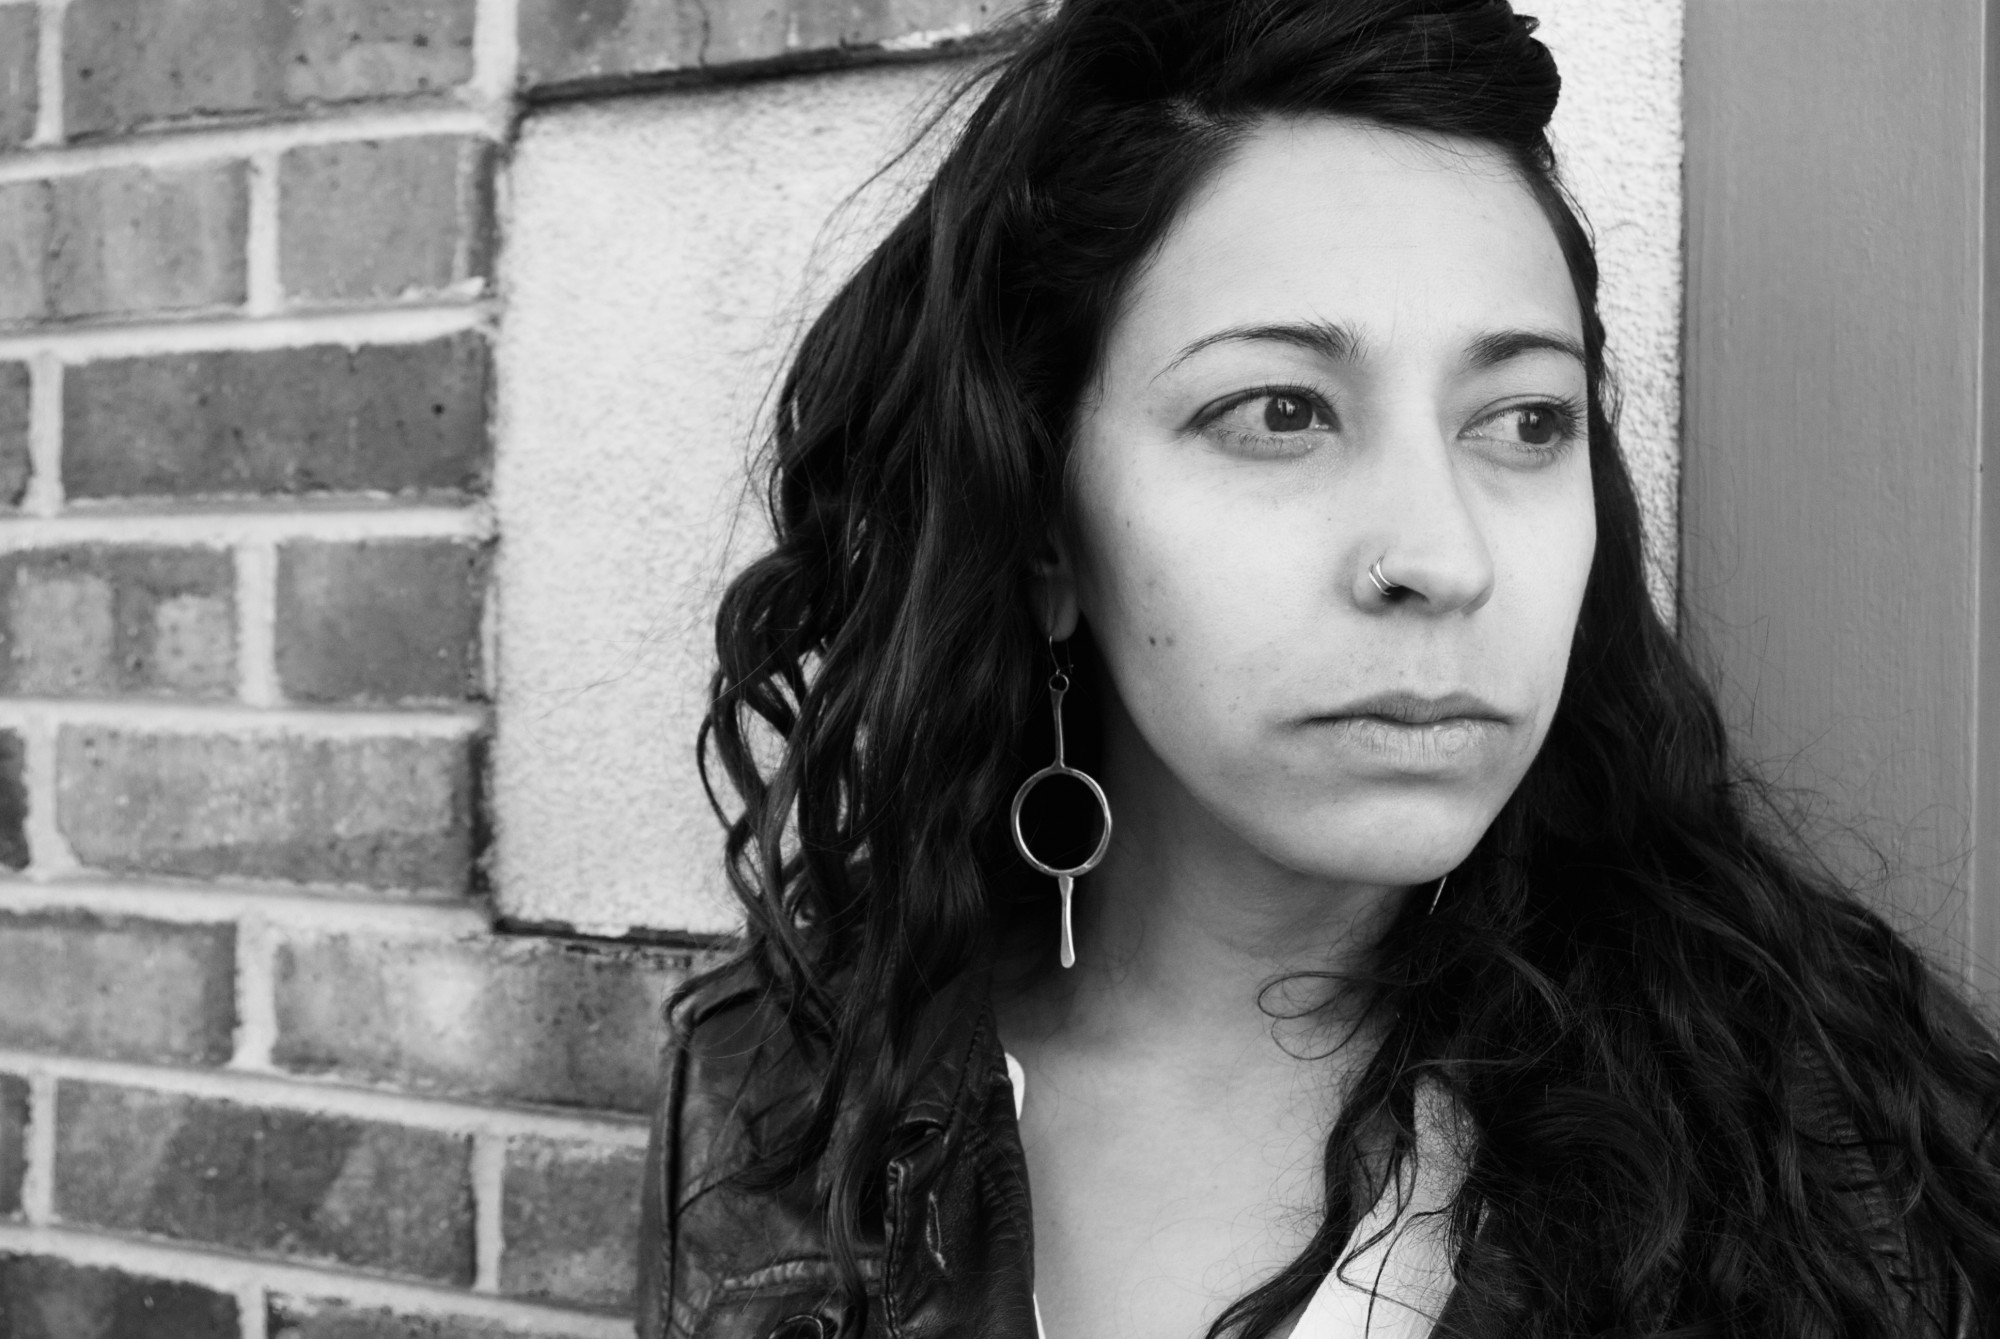 In this black and white photo, Serena Chopra is standing in front of a brick wall to the right of the frame, looking to the right.